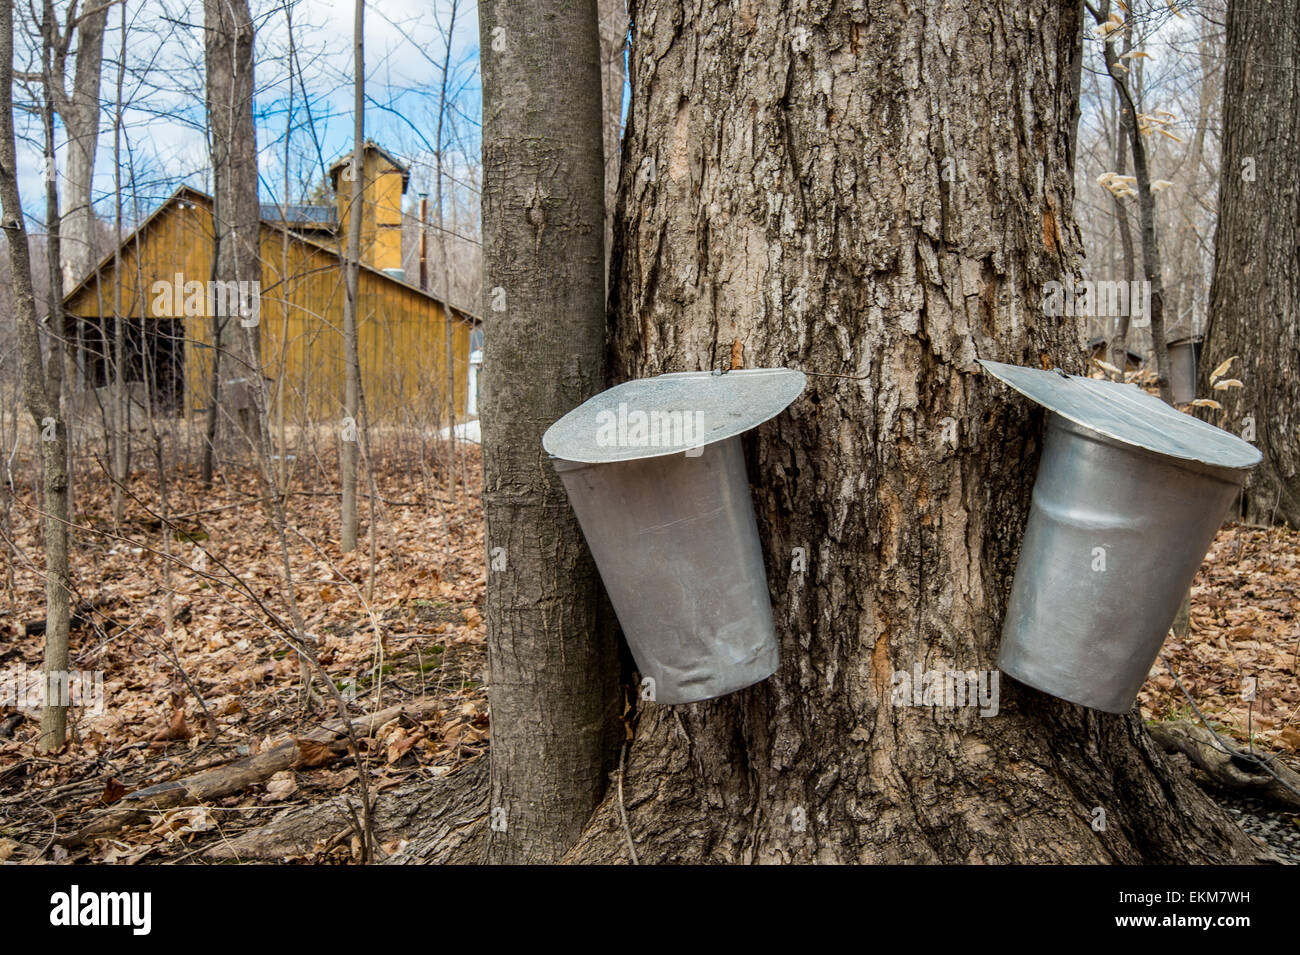 Pail used to collect sap of maple trees to produce maple syrup in Quebec. - Stock Image